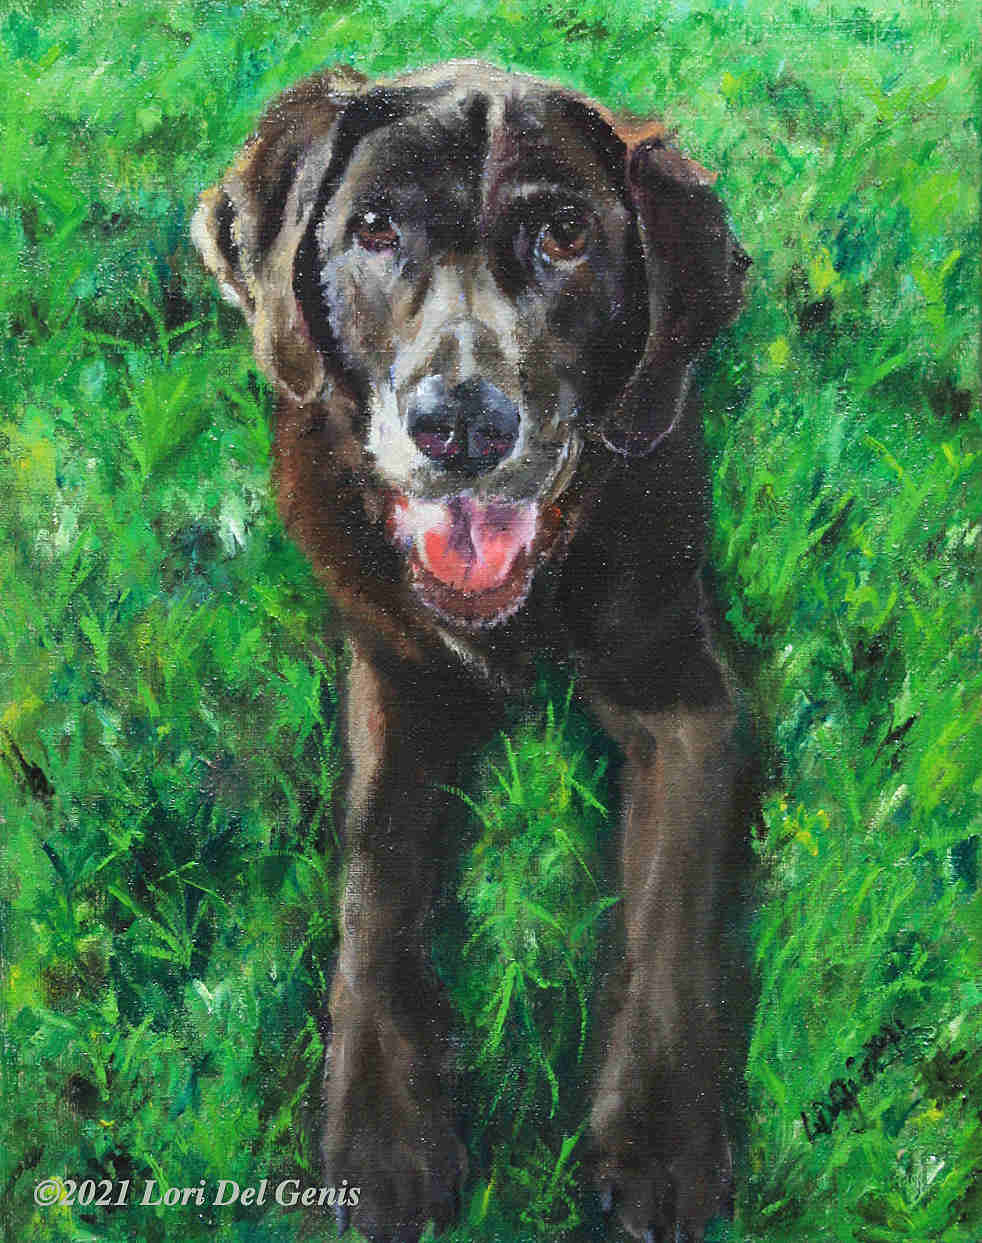 'Bella' is an oil painting of a chocolate lab commissioned as a donation to the Wakefield Food Pantry. (Lori Del Genis, 2021)